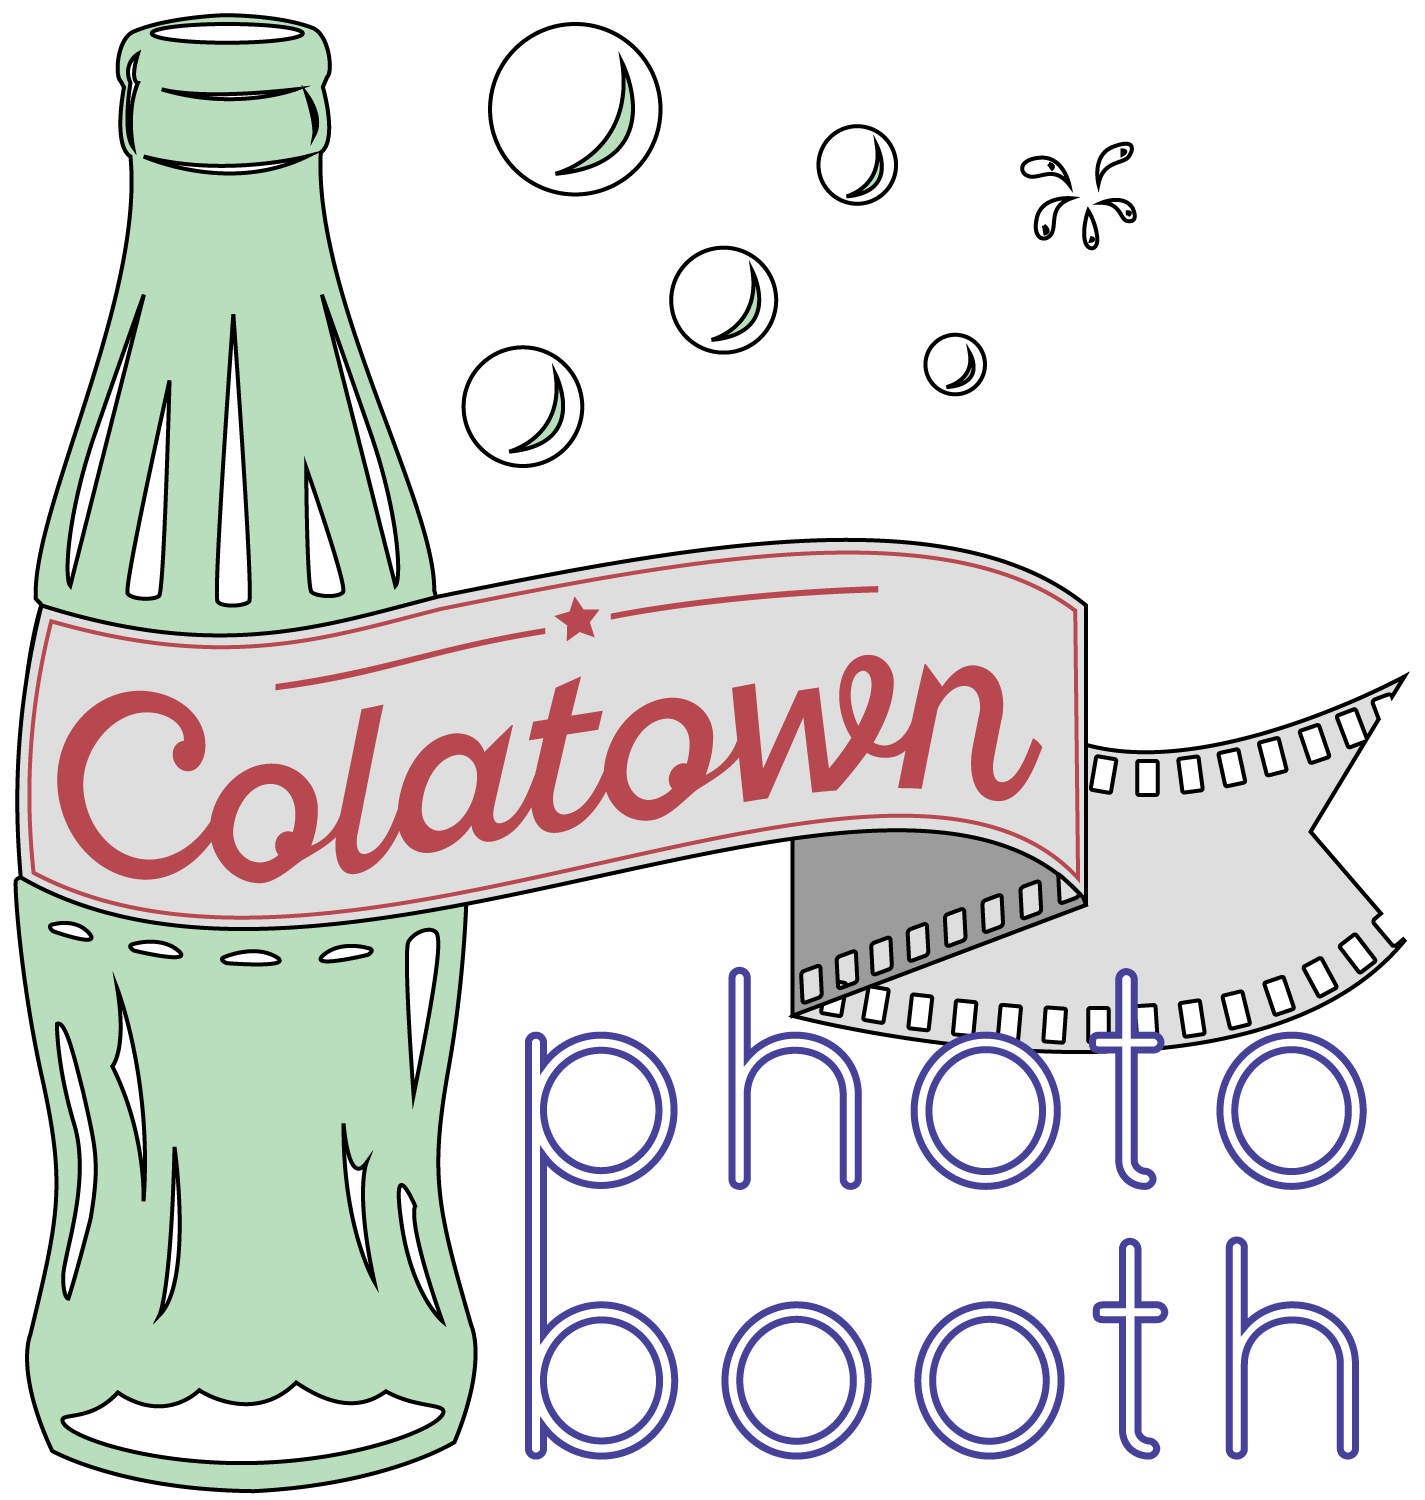 Colatown Photo Booth